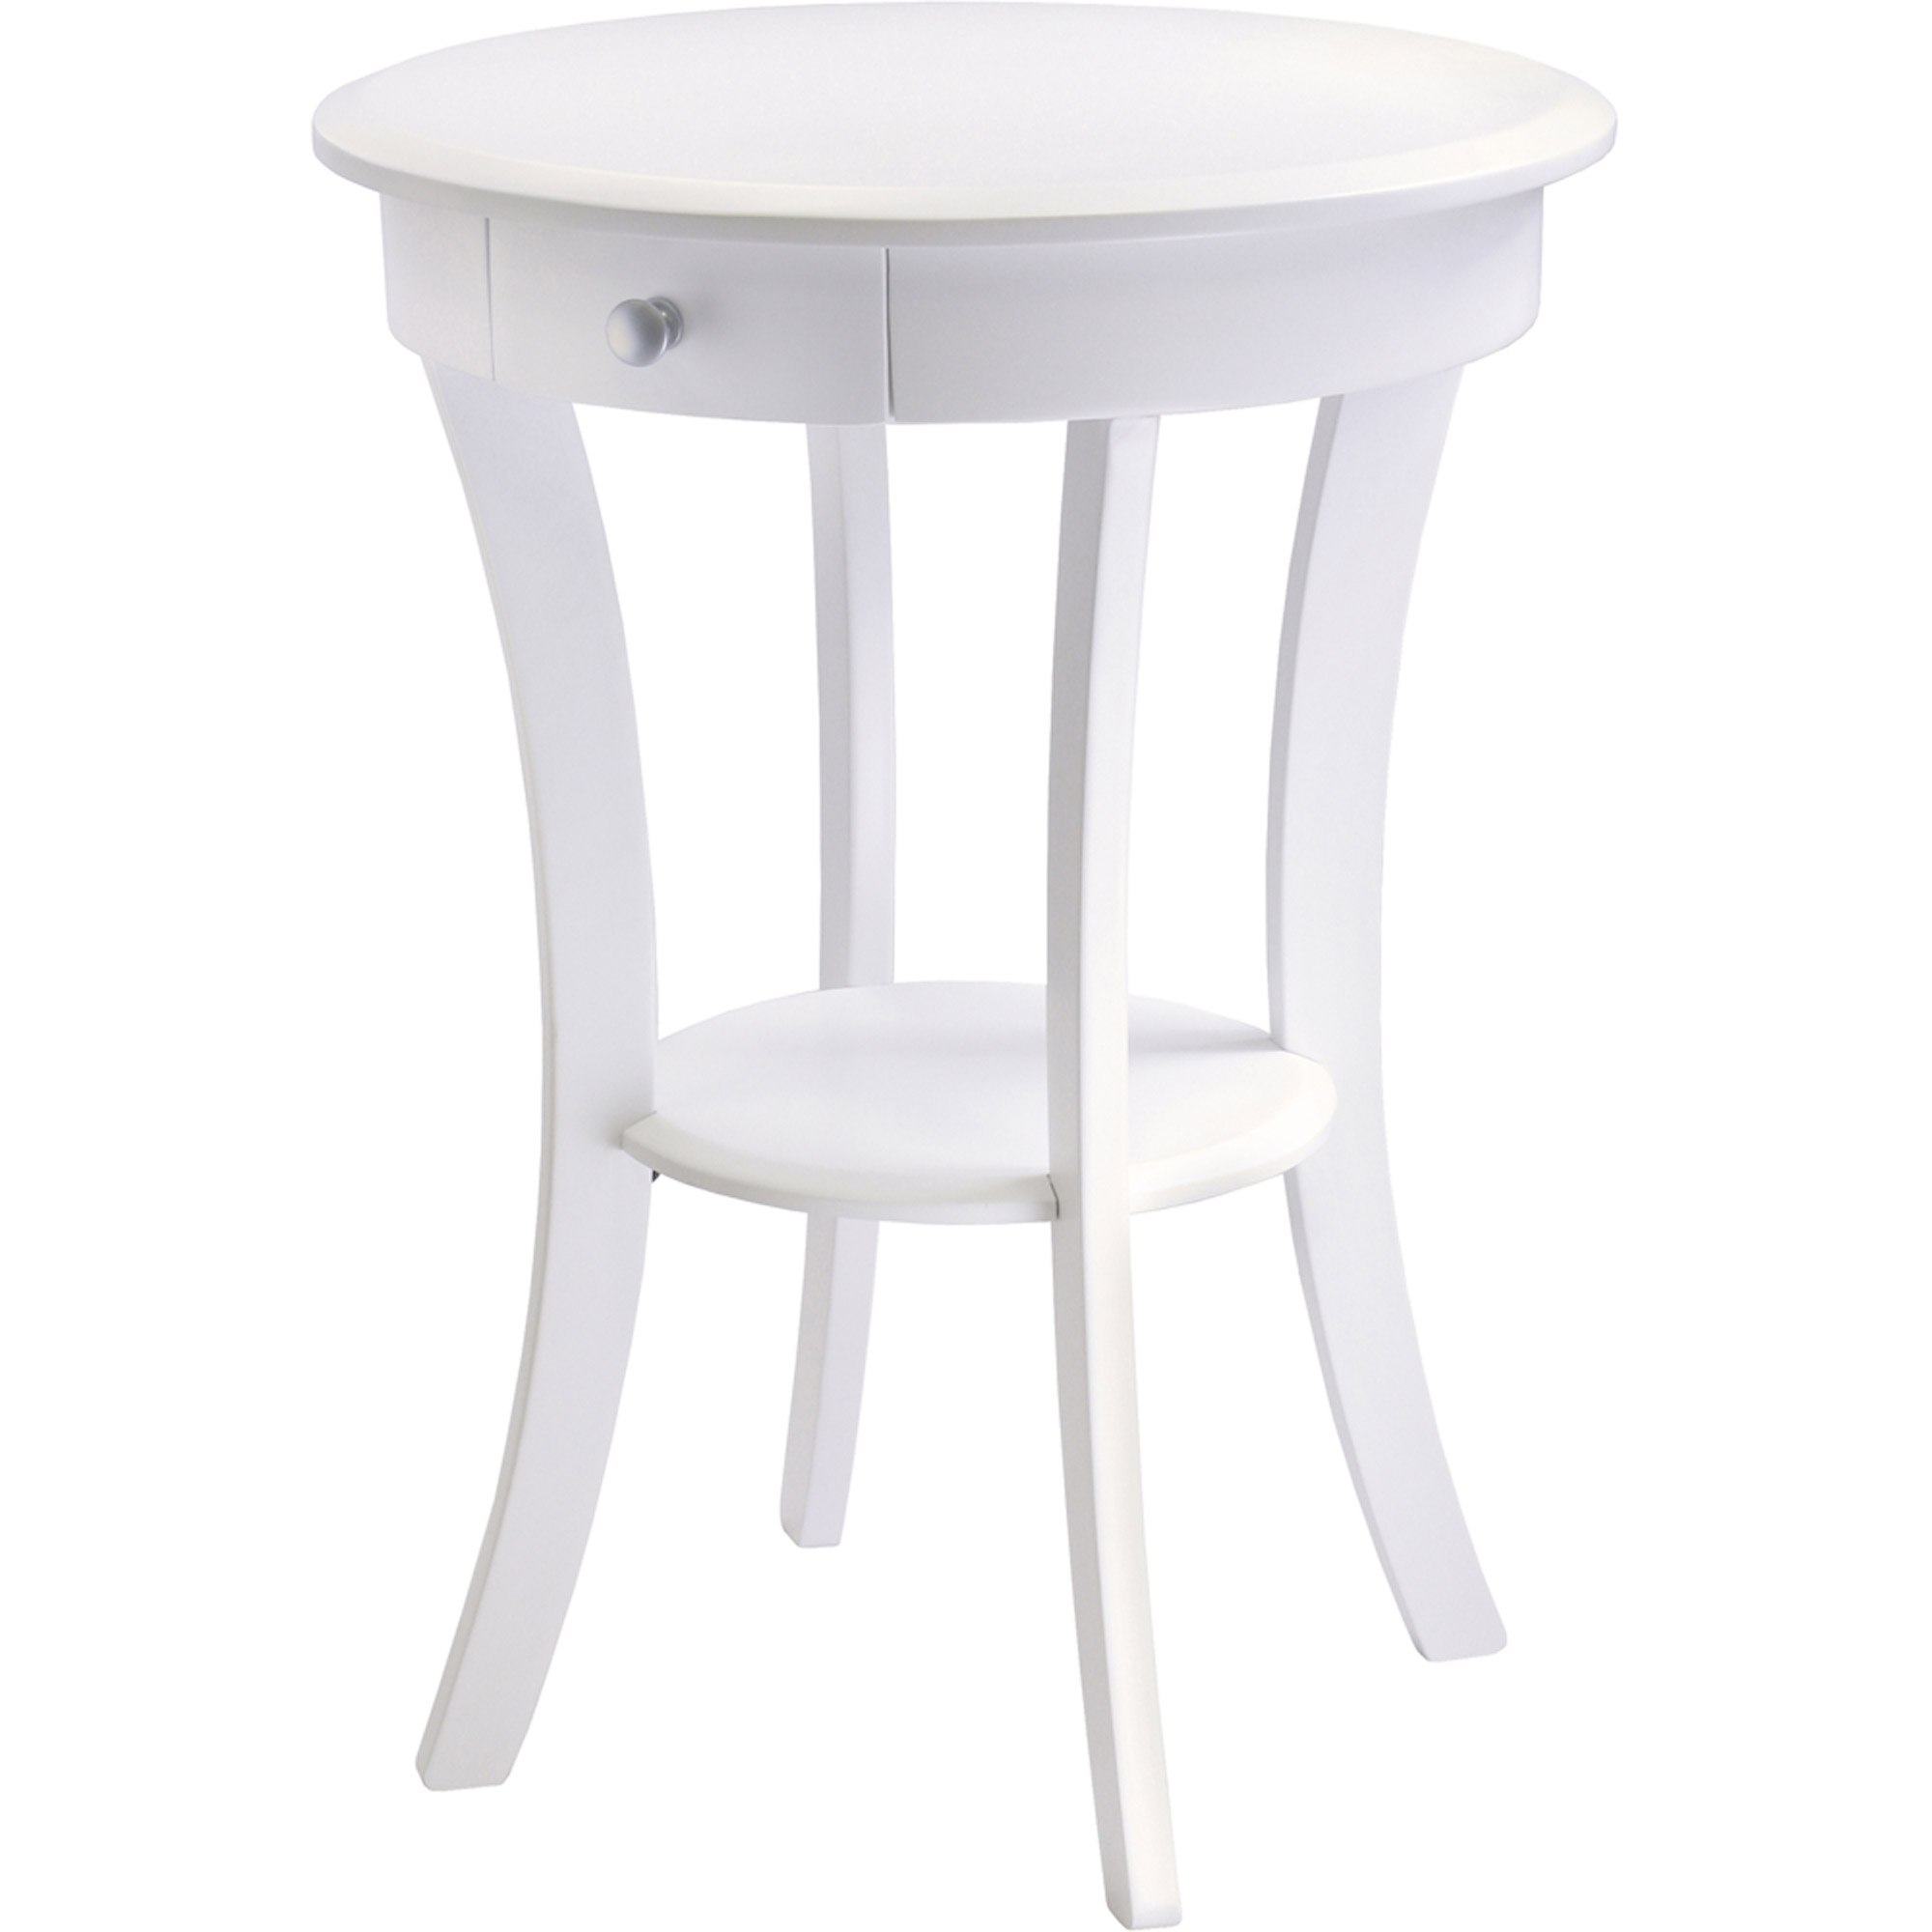 sasha round accent table skirts rattan patio furniture slim hallway cabinet white acrylic side lamps with clear glass coffee wide granite narrow farmhouse dining target threshold